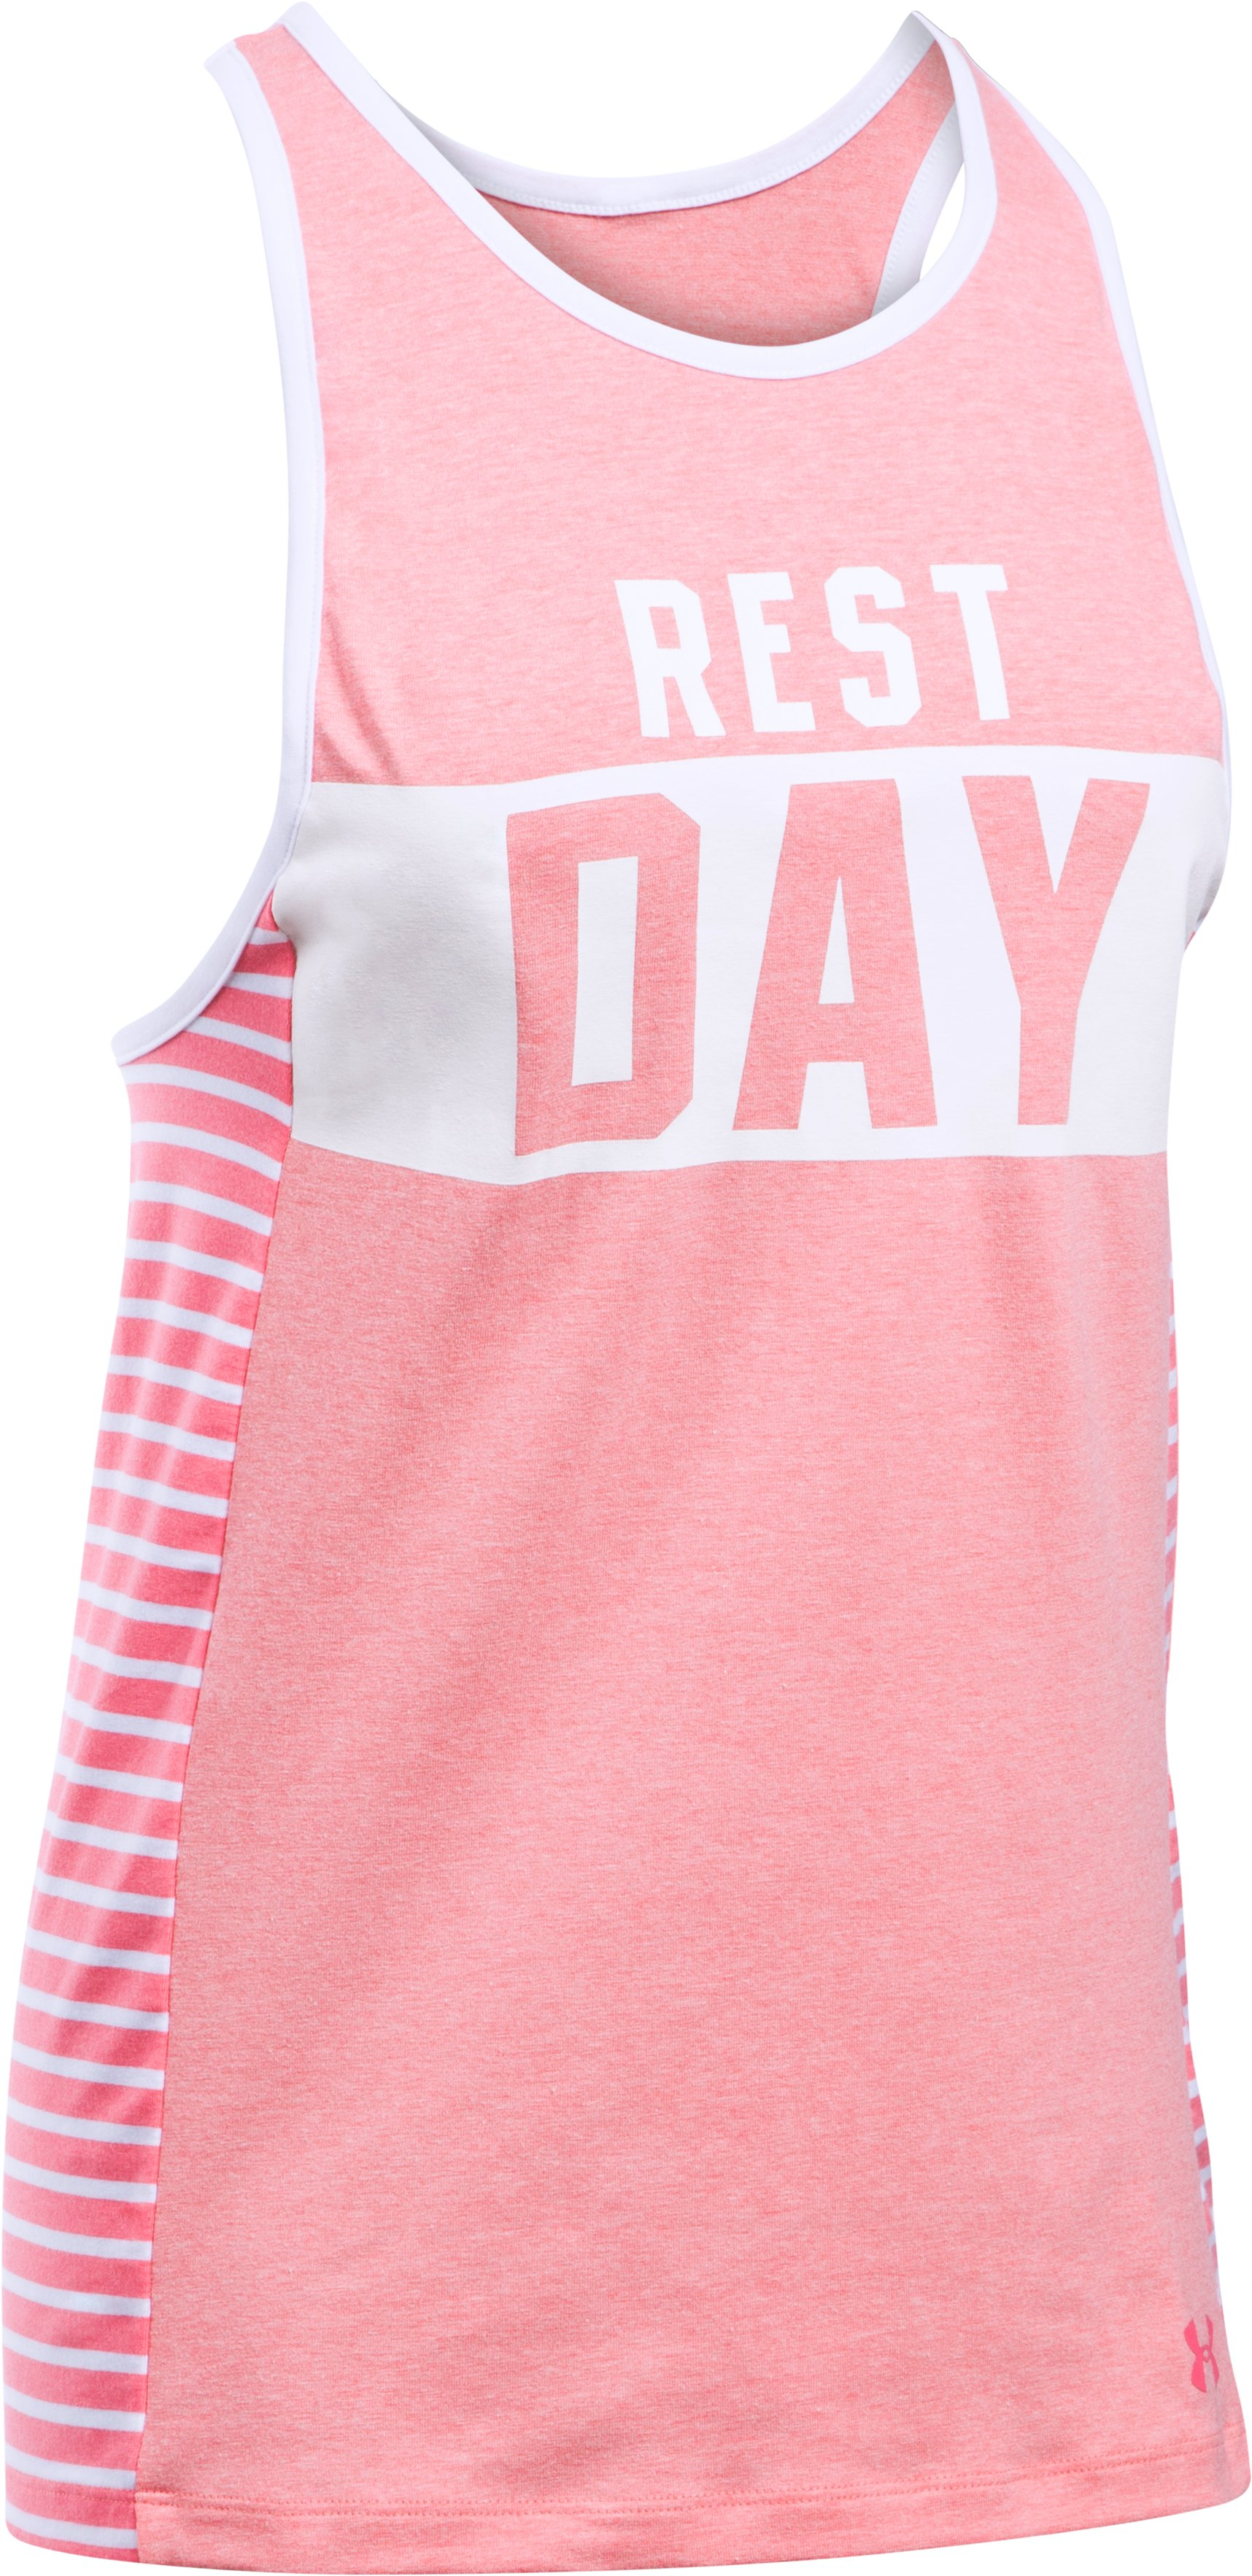 Women's UA Rest Day Graphic Tank, PERFECTION LIGHT HEATHER, undefined